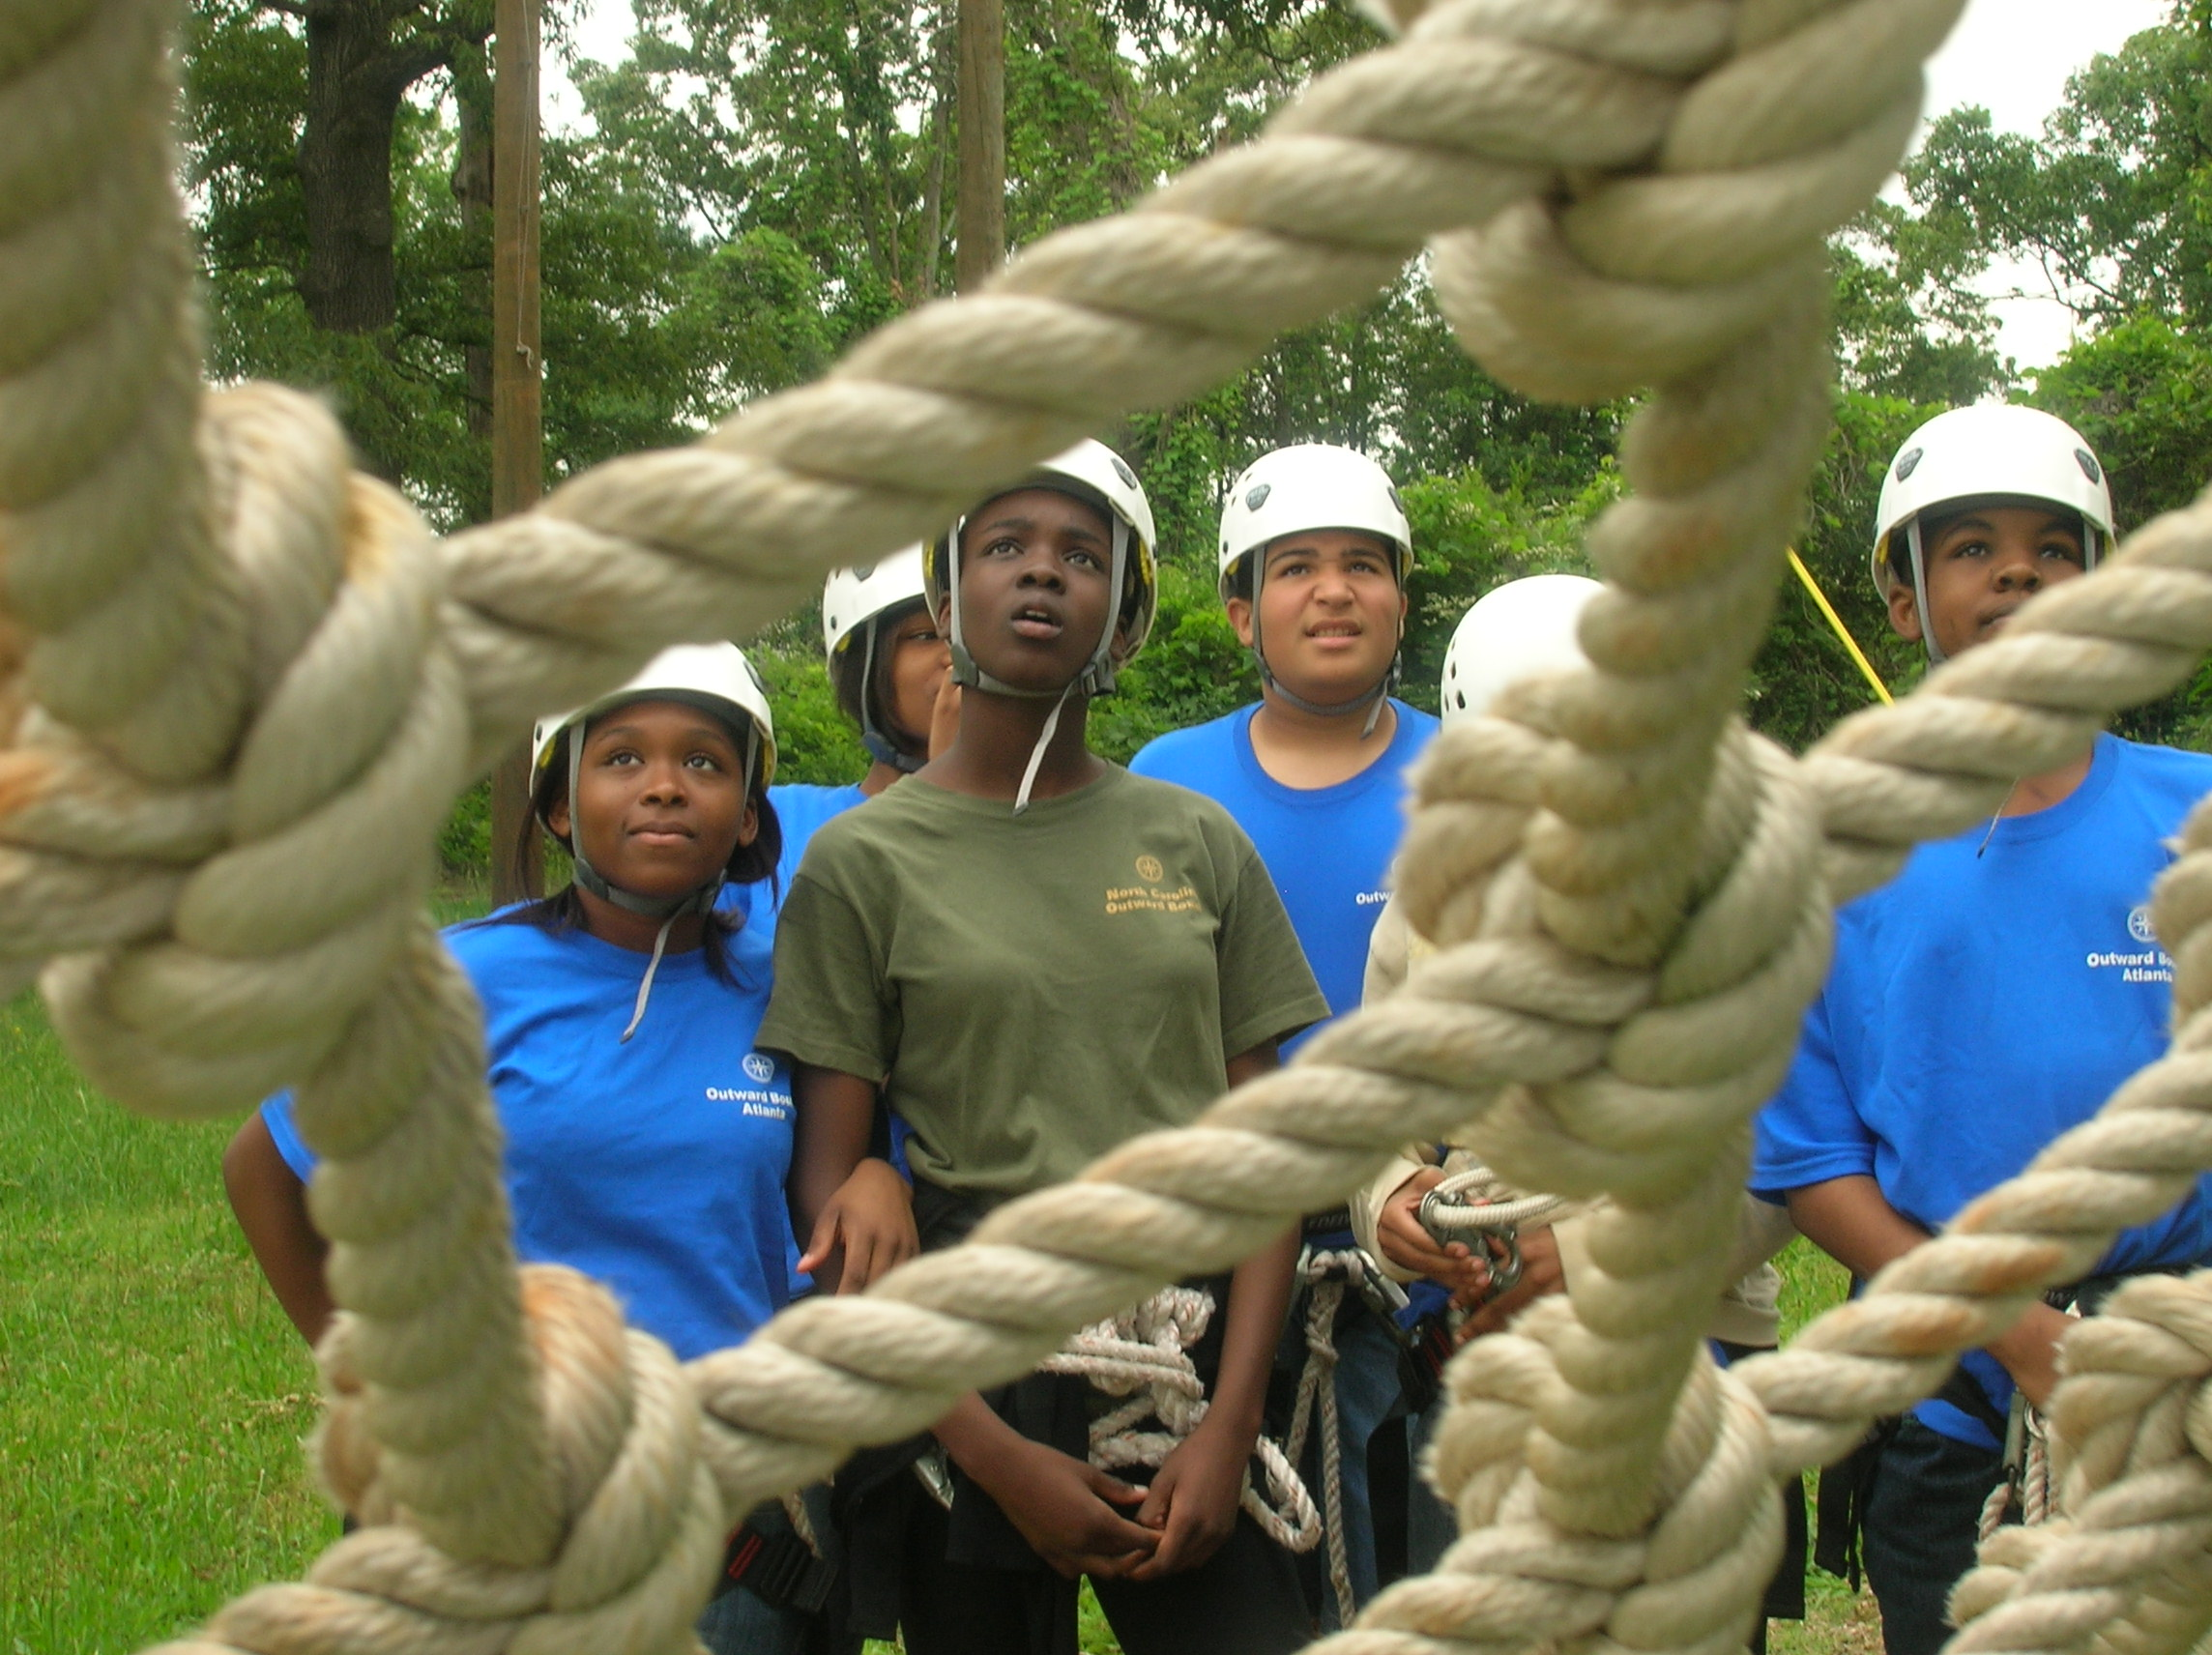 High ropes course in Atlanta